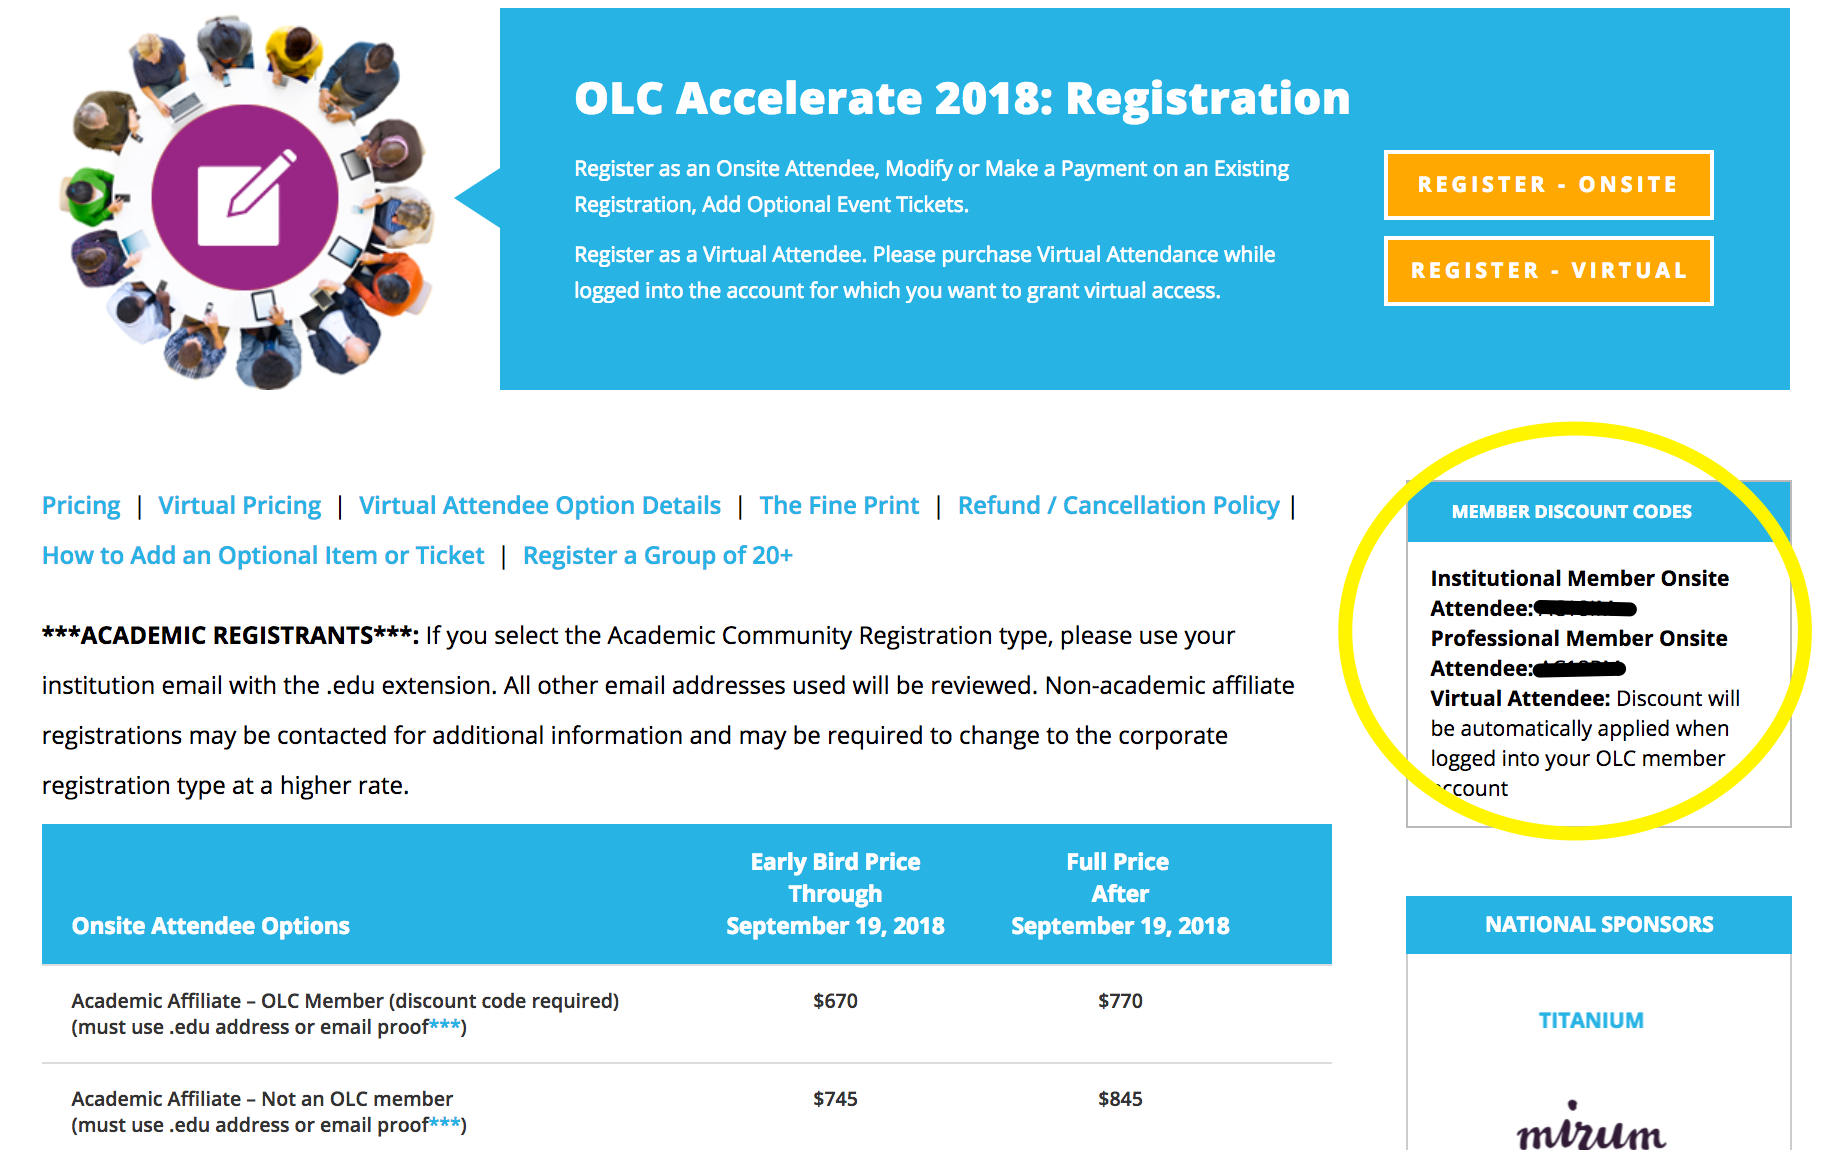 Find A Code >> Olc Accelerate Where Do I Find The Member Discount Code